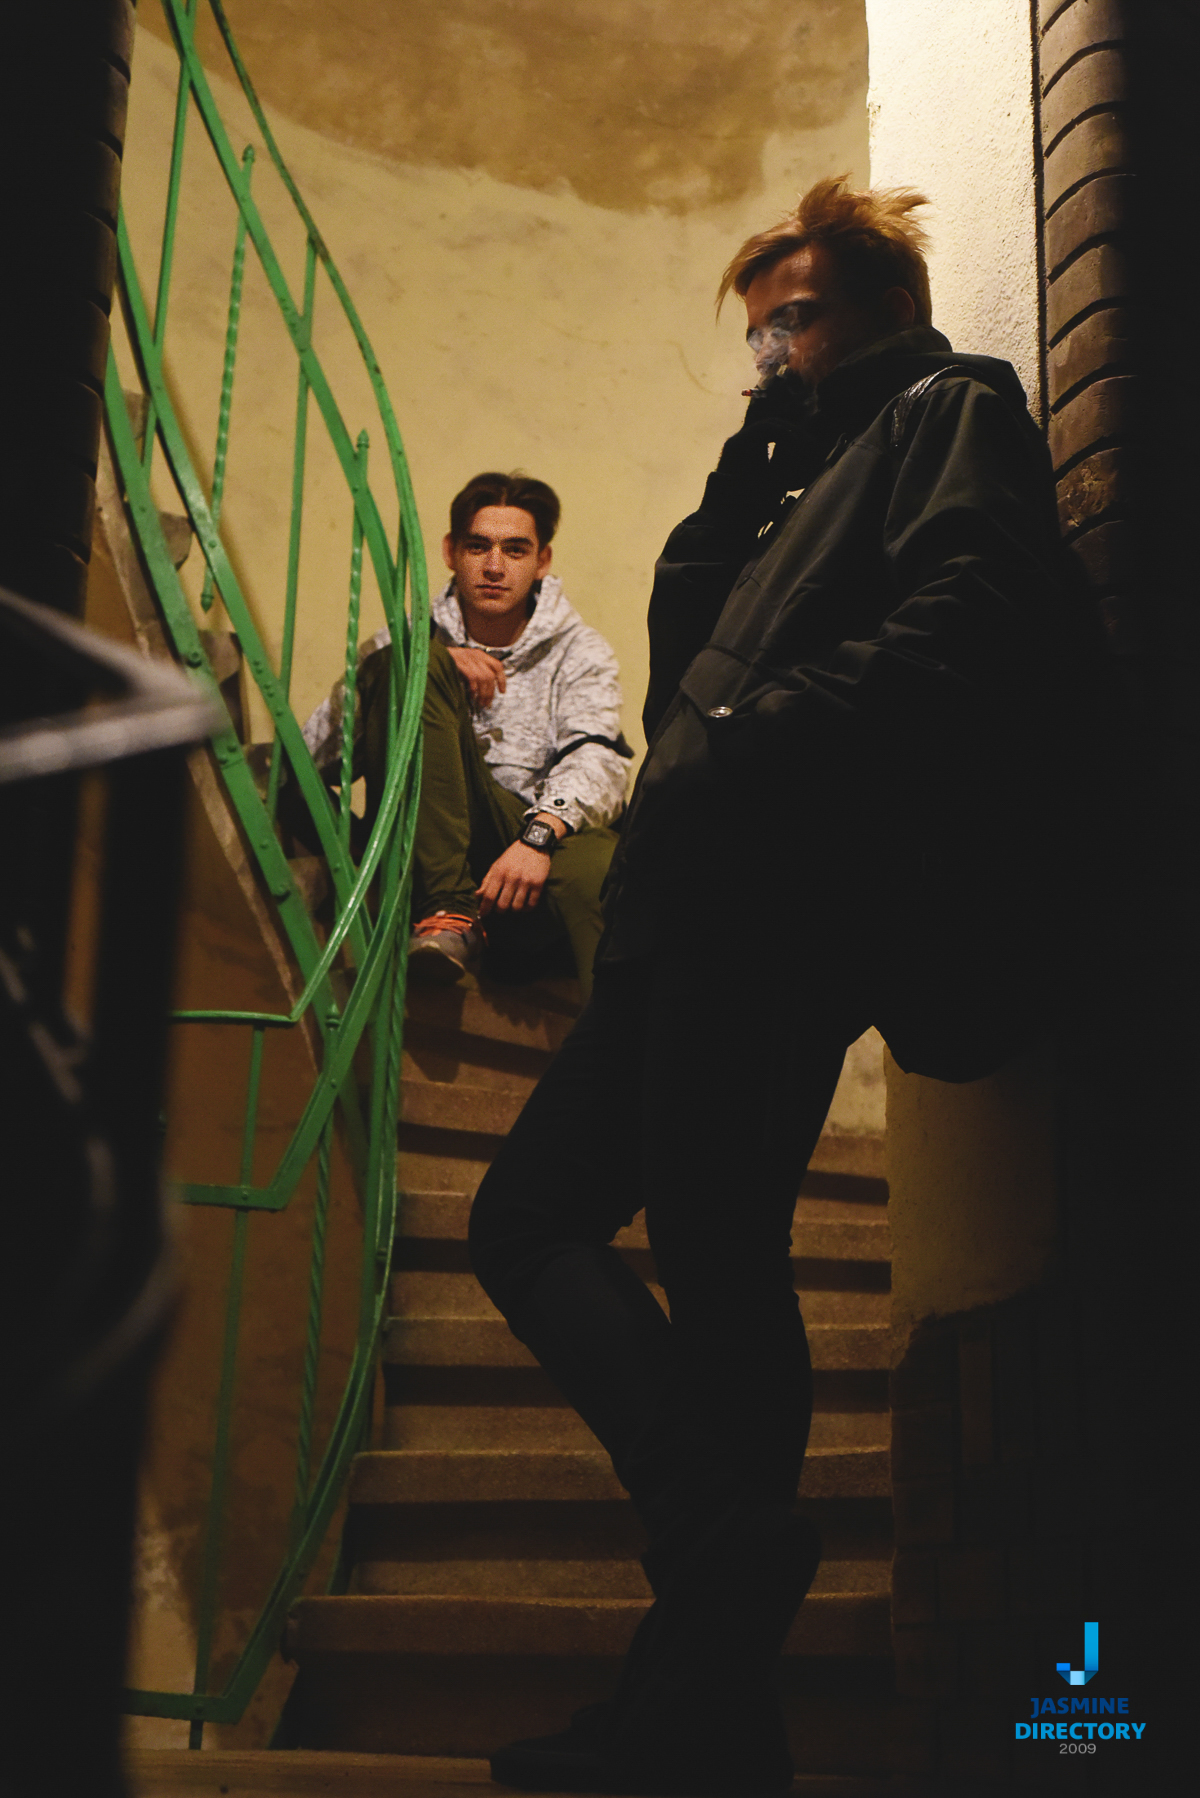 Two young man on stair